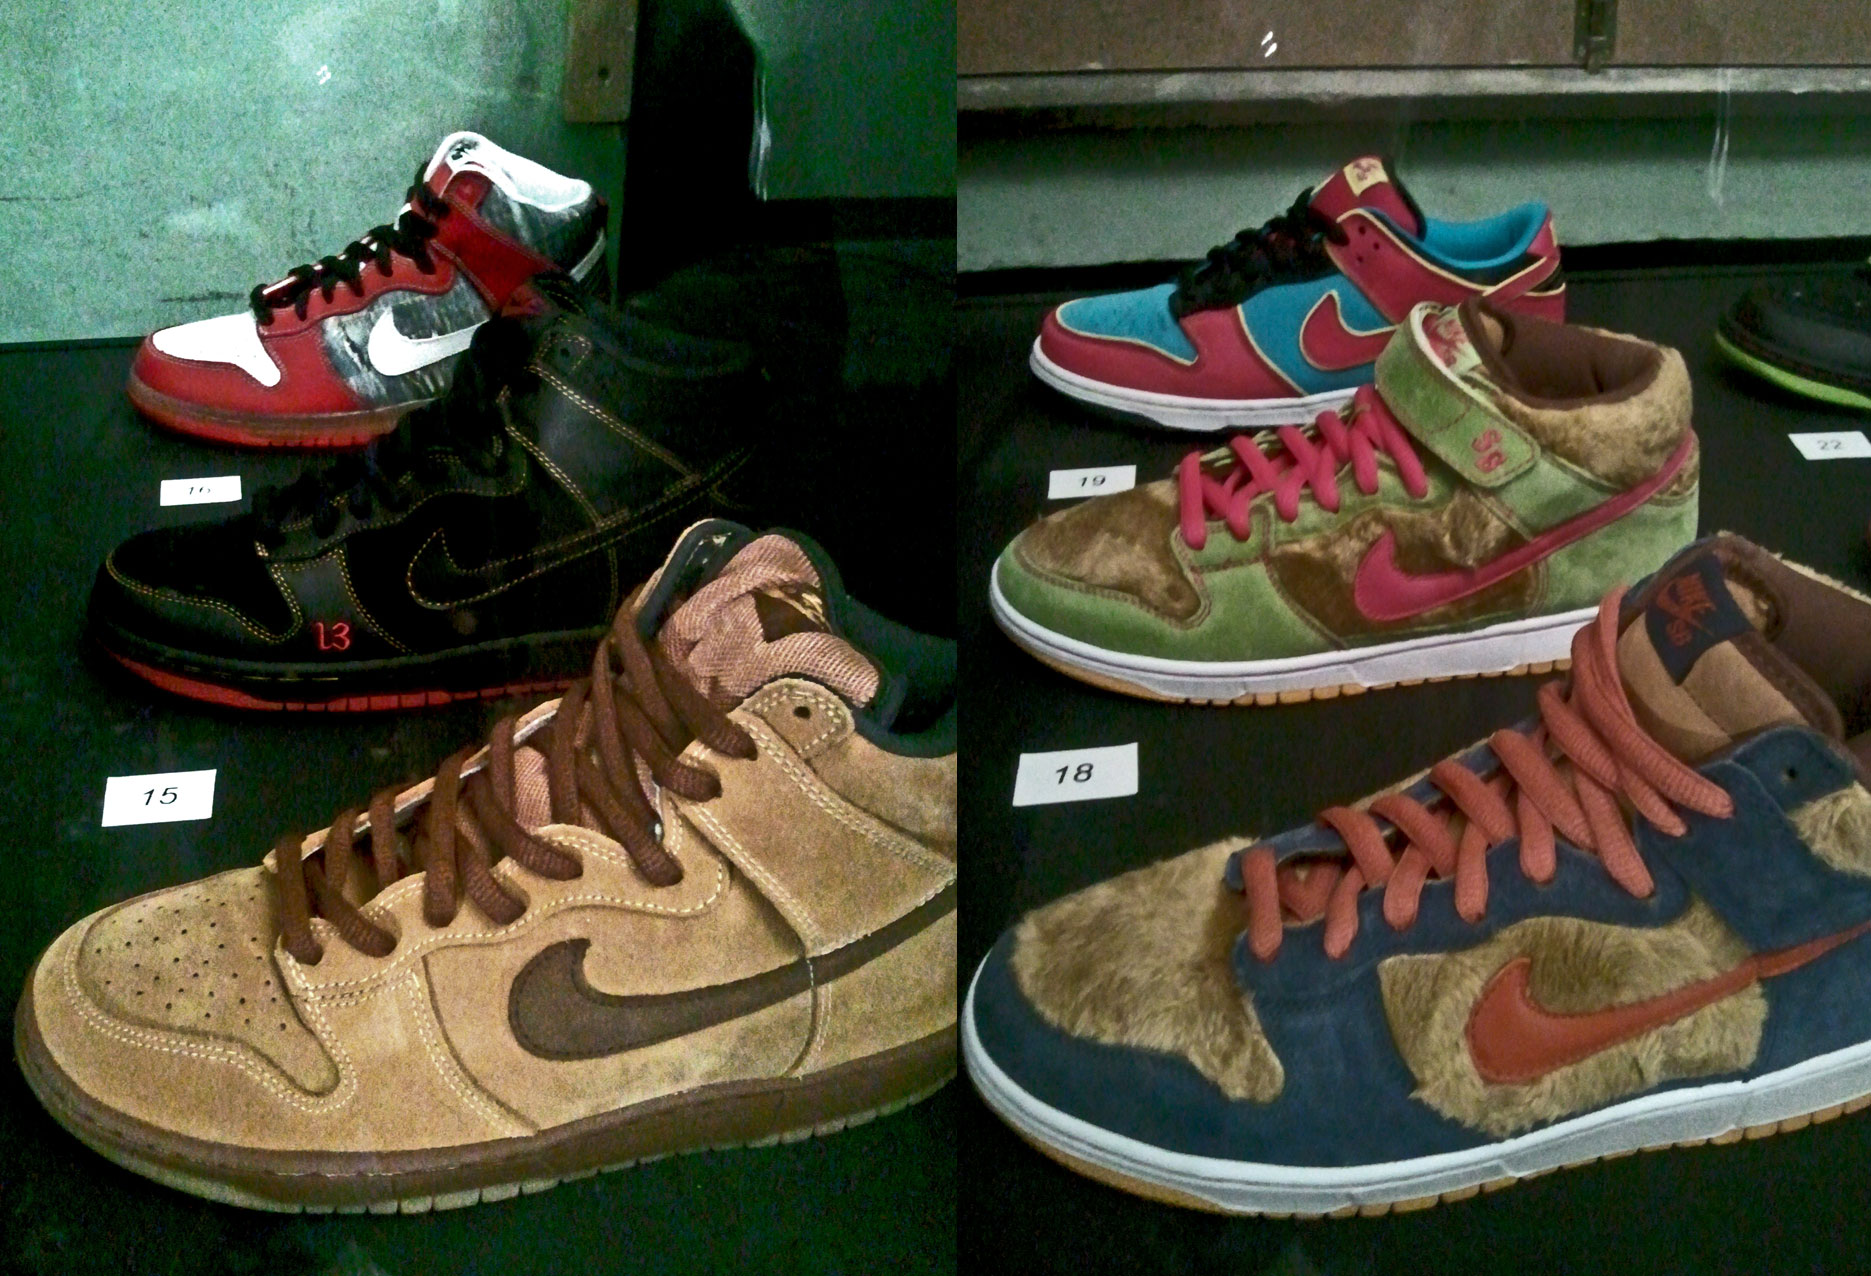 Dunk High Pro SB Maple Bison, Dunk High Pro SB Unlucky, Dunk High Pro SB Shoe Goo, Dunk Pro SB Papa Bear, Dunk Pro SB Mama Bear, Dunk Low Pro SB Mrs. Pacman